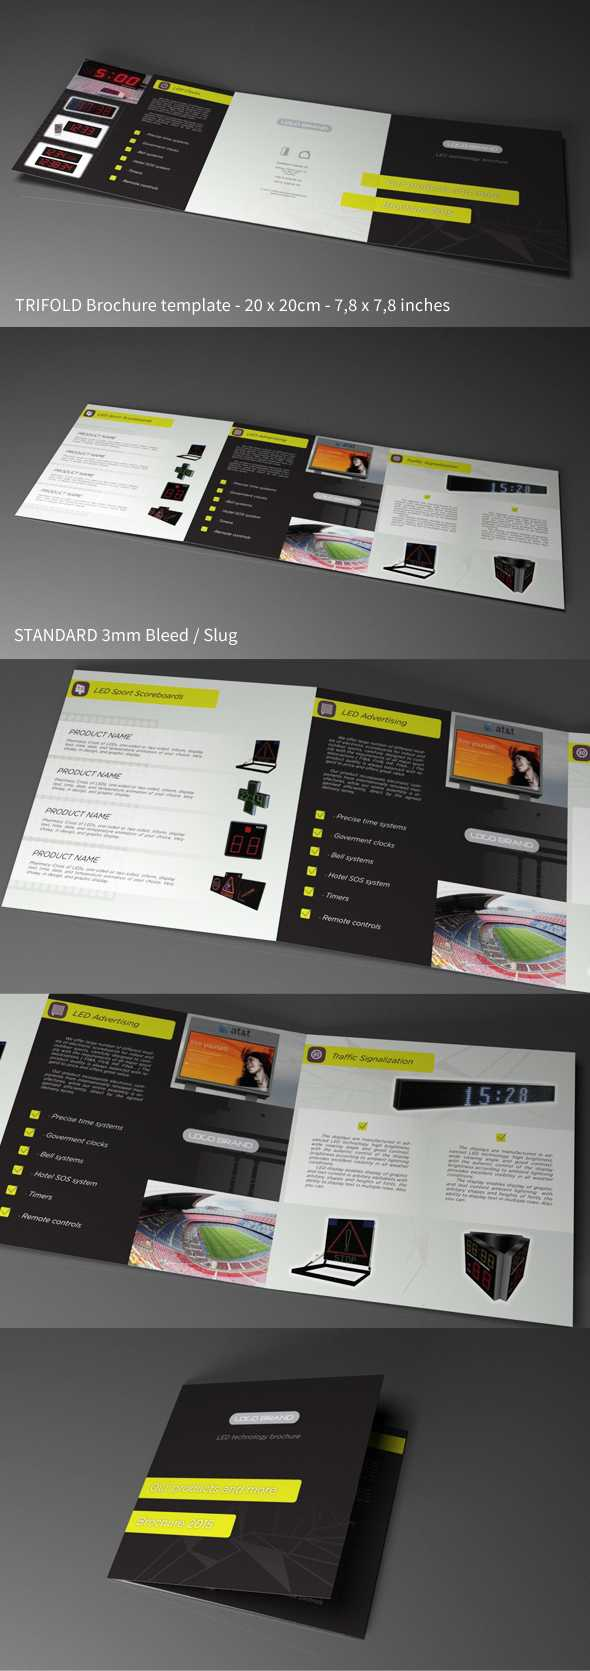 Free Indesign Template - Trifold Square Led Tech On Behance within Tri Fold Brochure Template Indesign Free Download